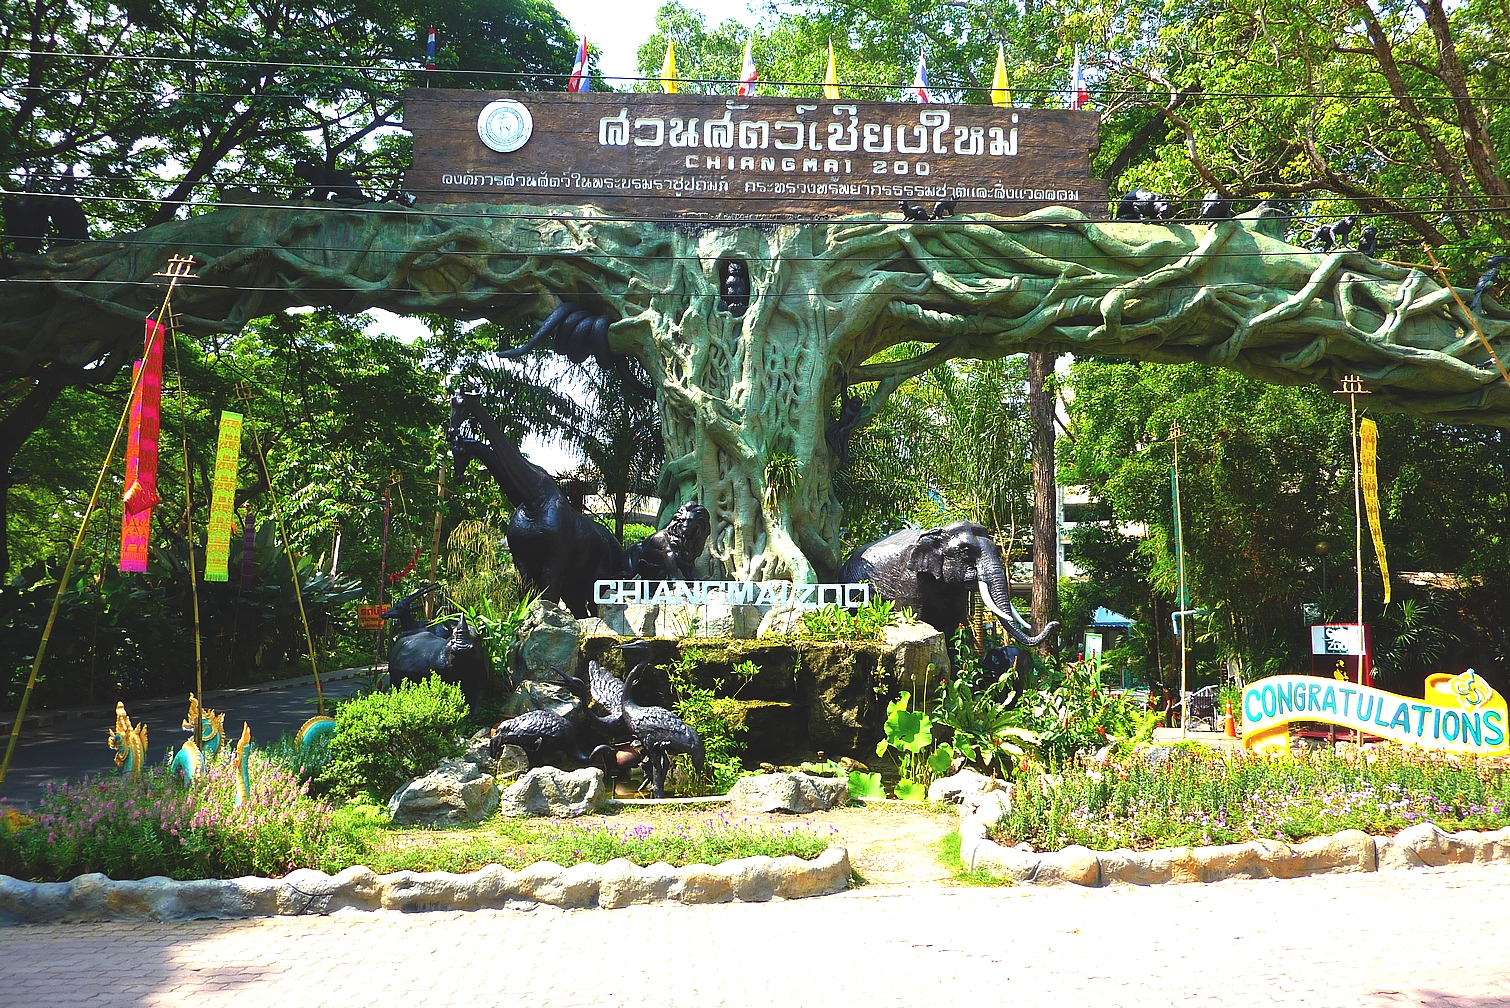 Chiang Mai Thailand  City pictures : thailand chiang mai chiang mai zoo thailand chiang mai chiang